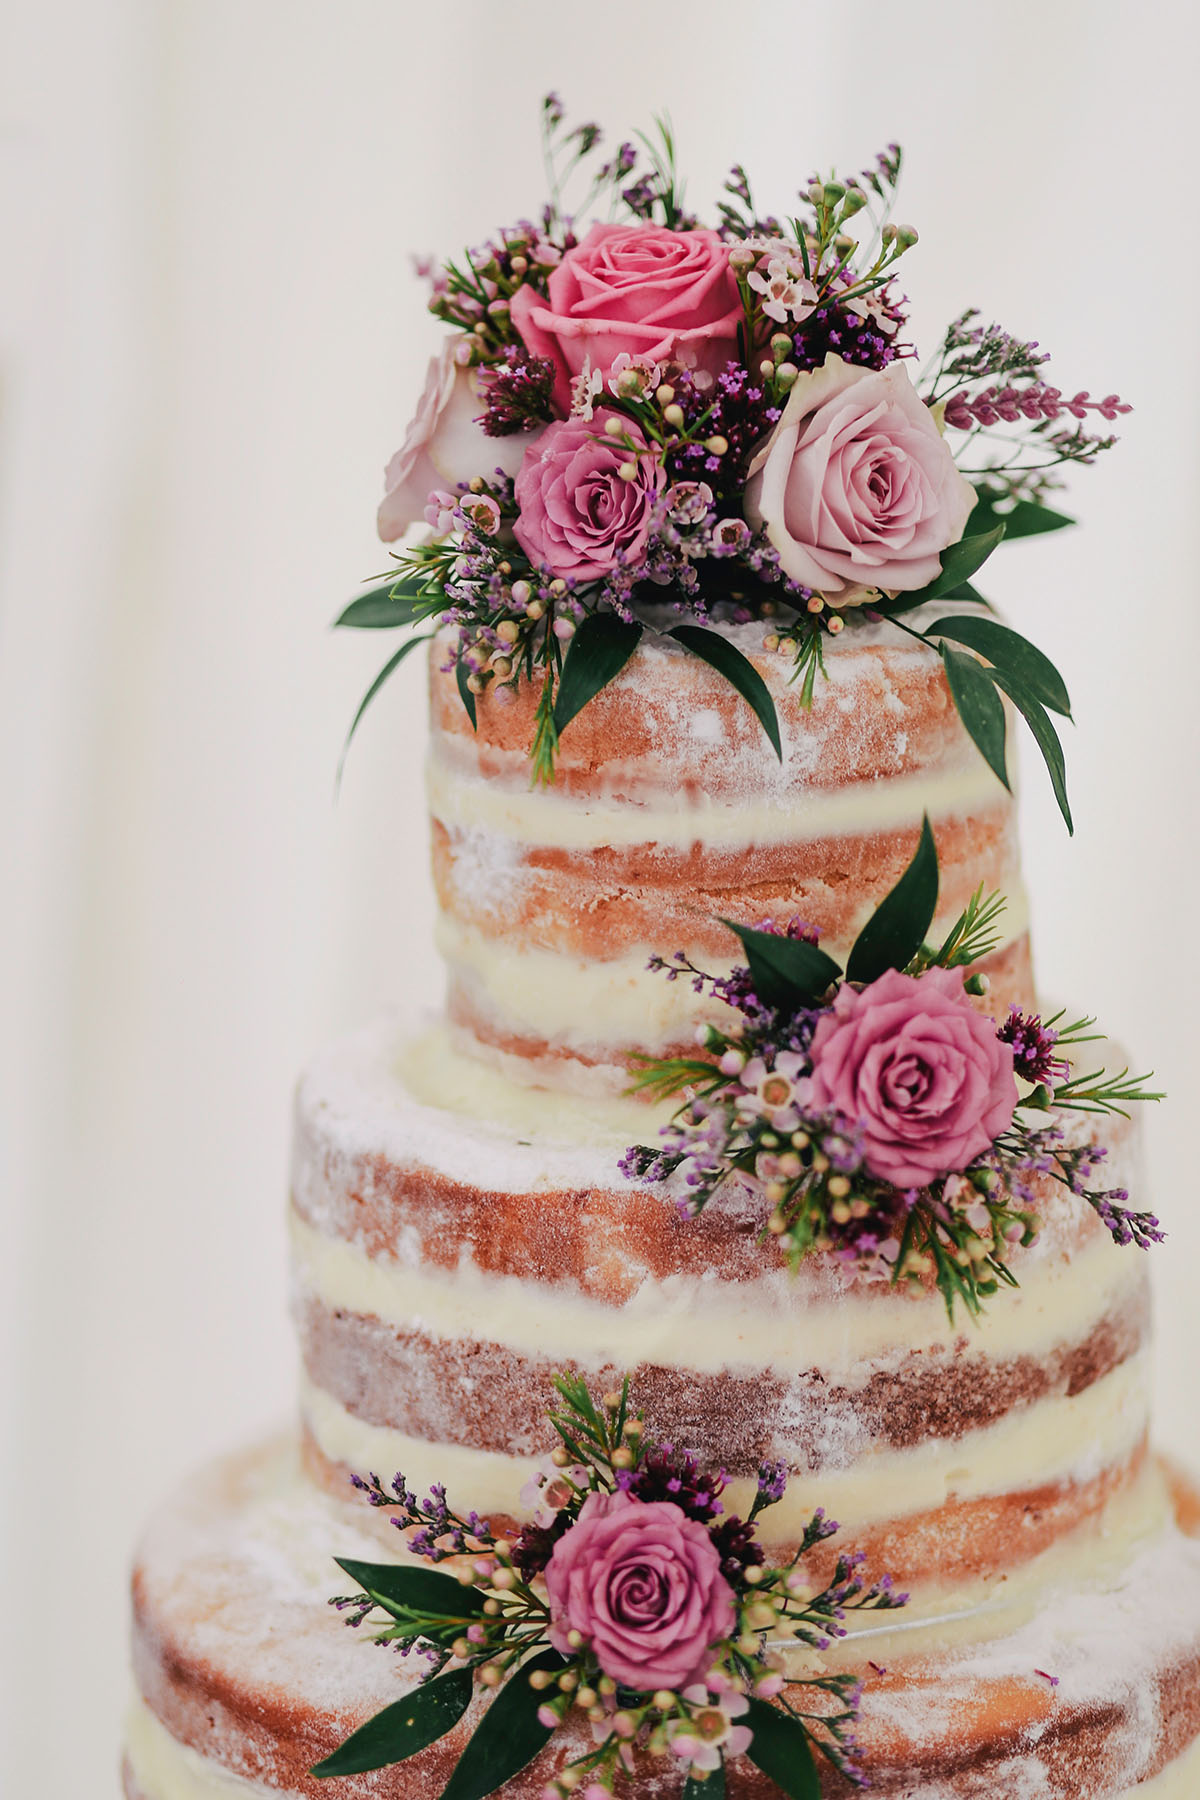 Beautiful decorative wedding cake.